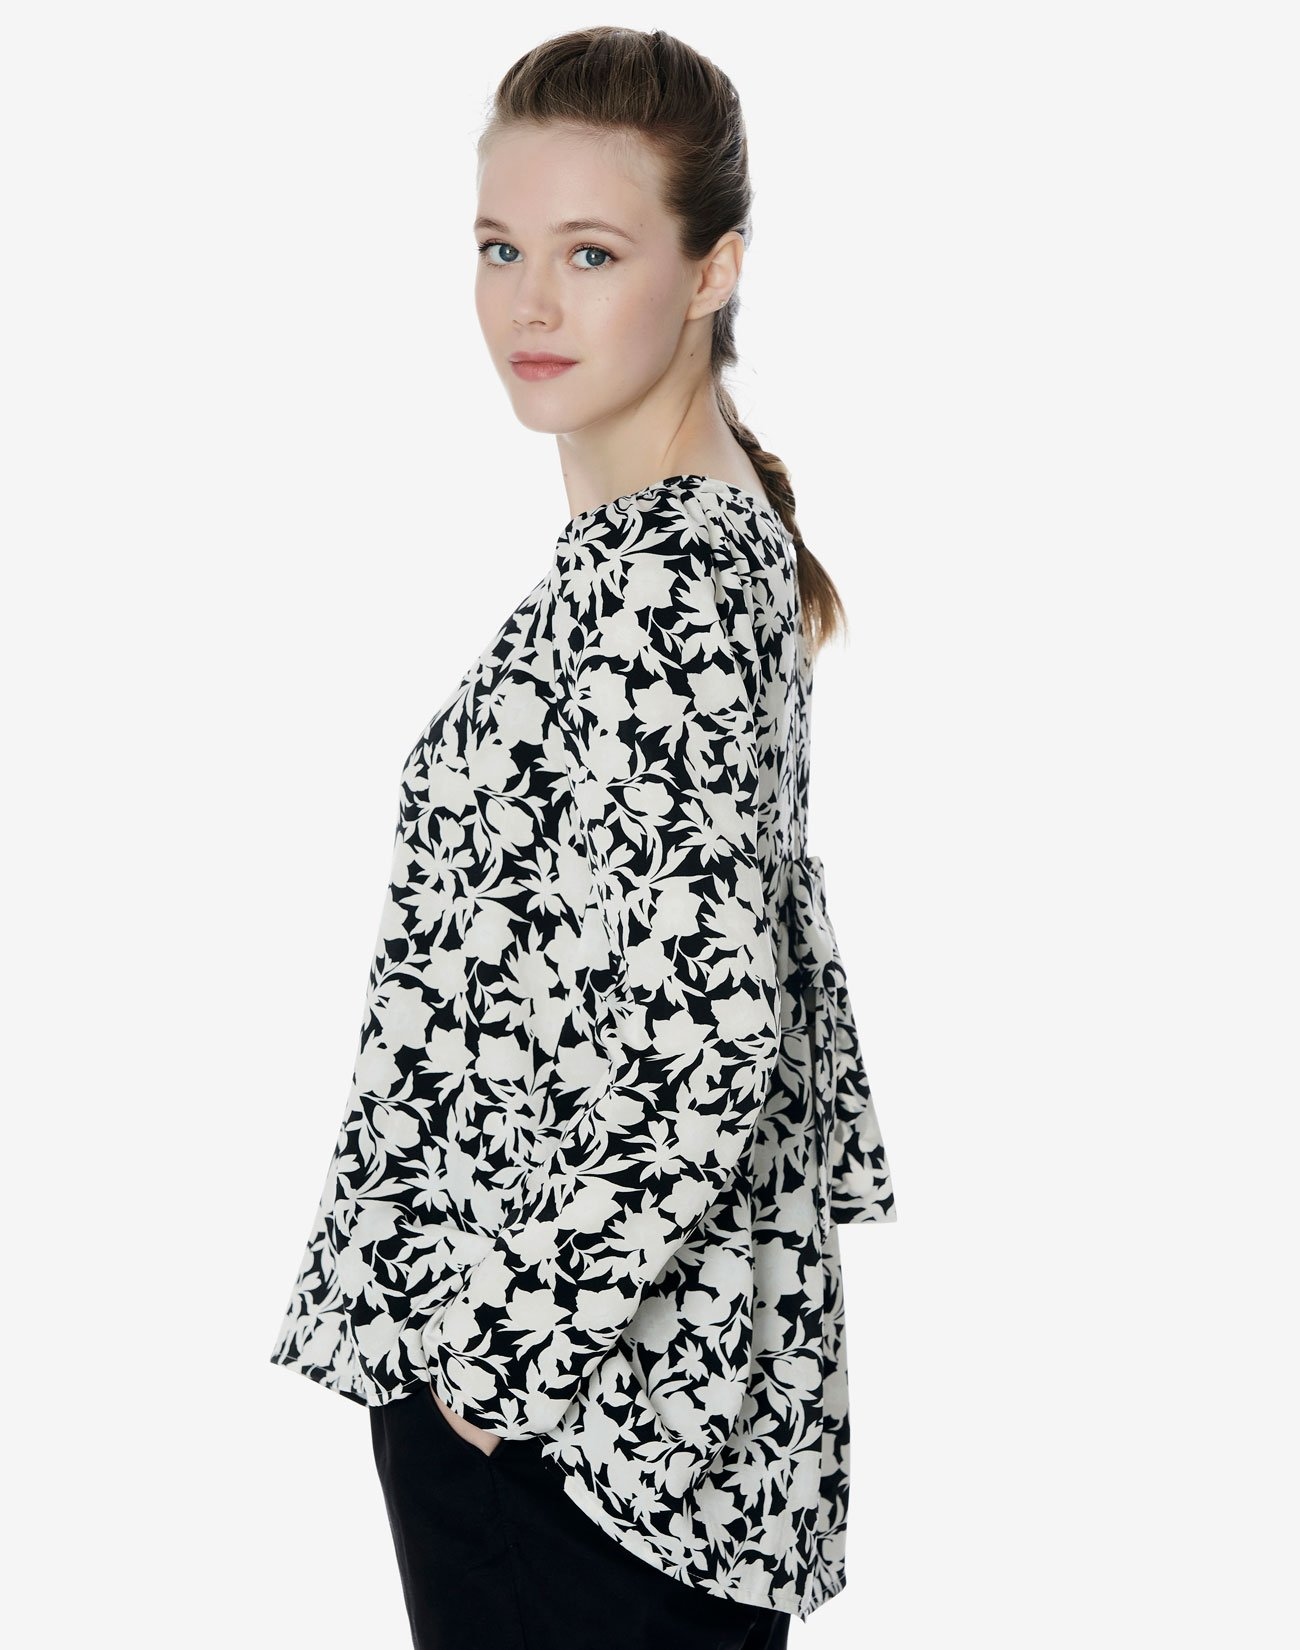 Printed blouse with bow